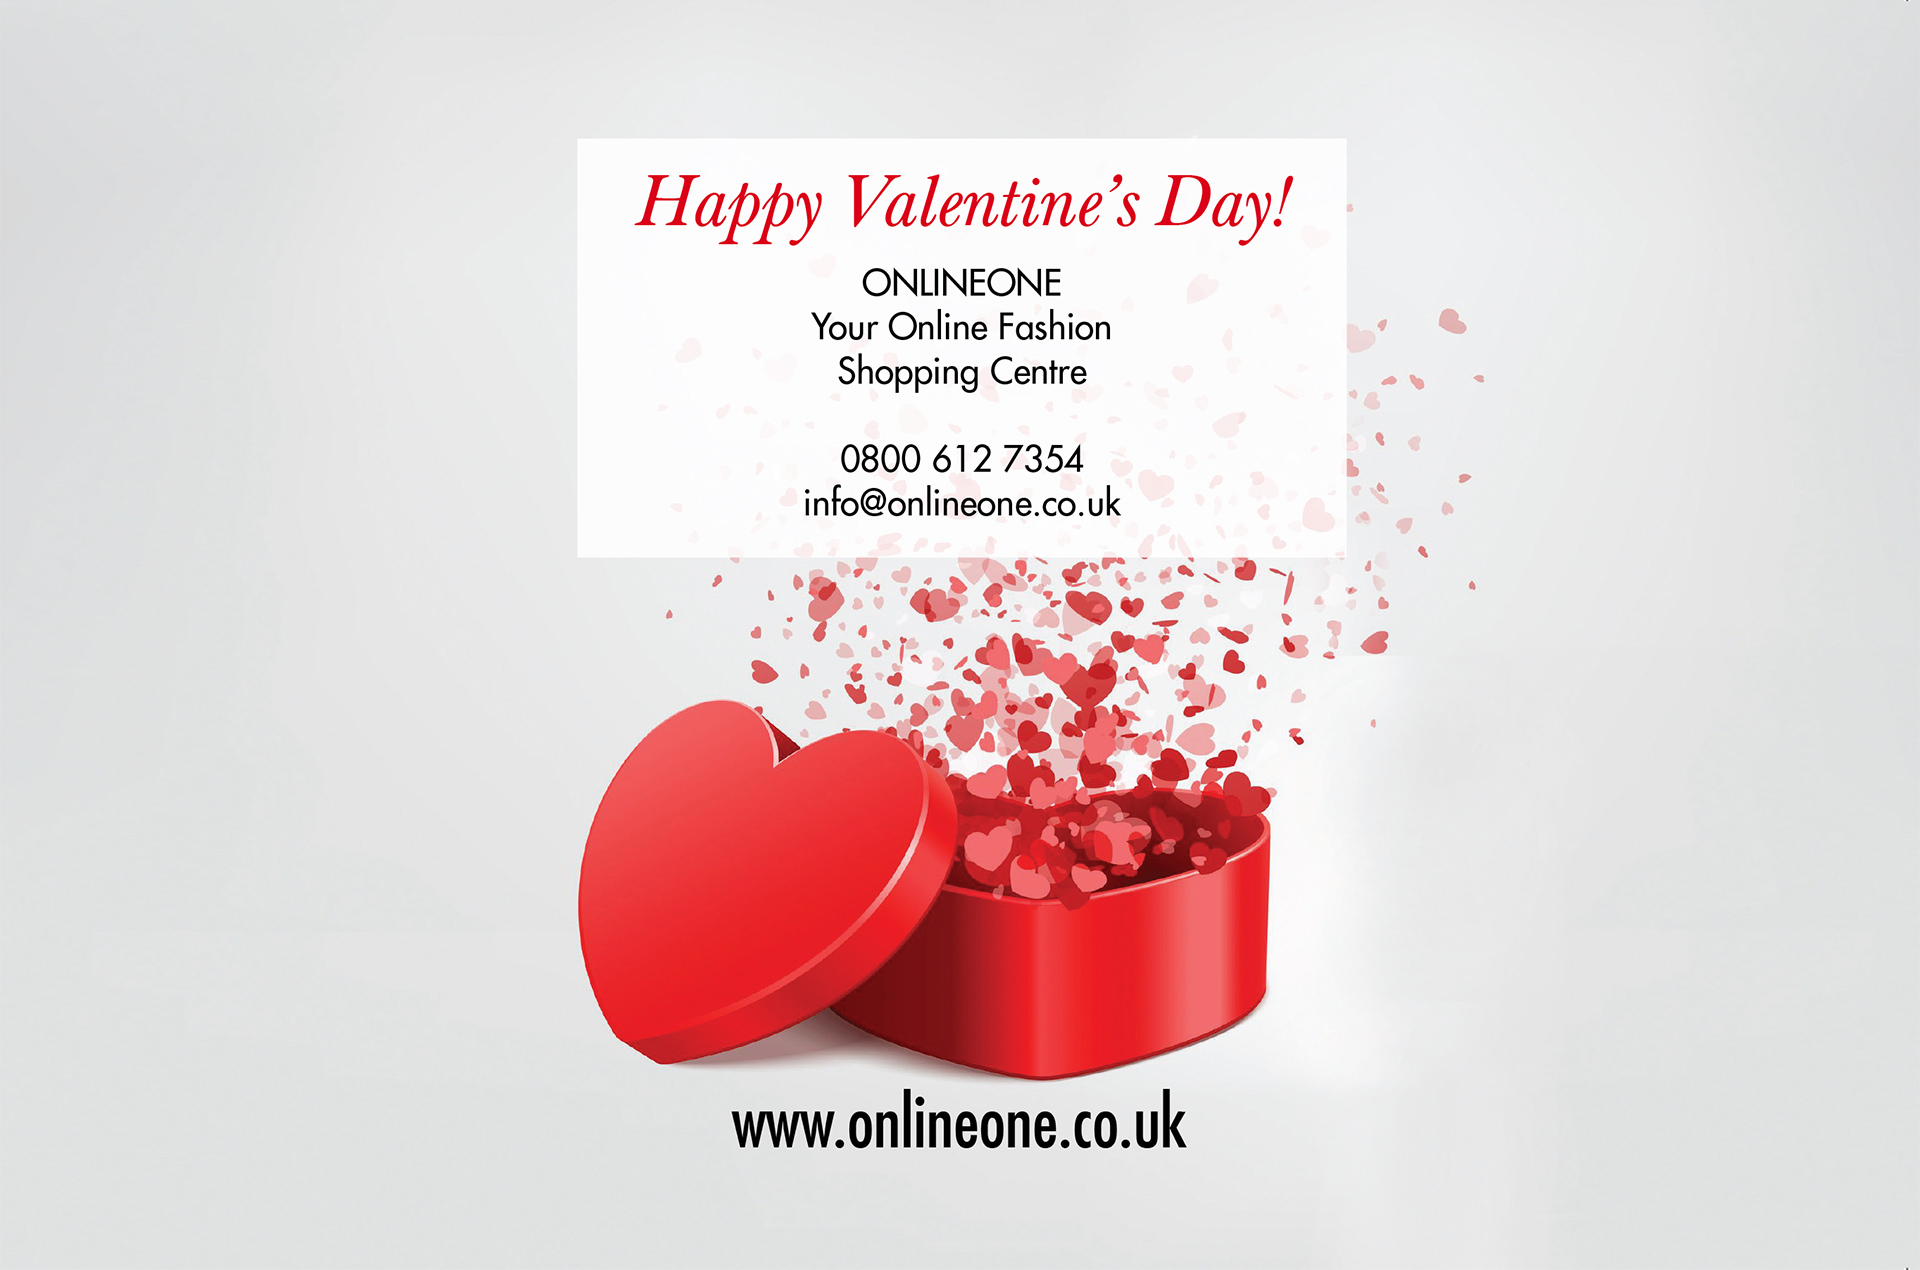 ONLINEONE-VALENTINES-DAY-FLYER-L2